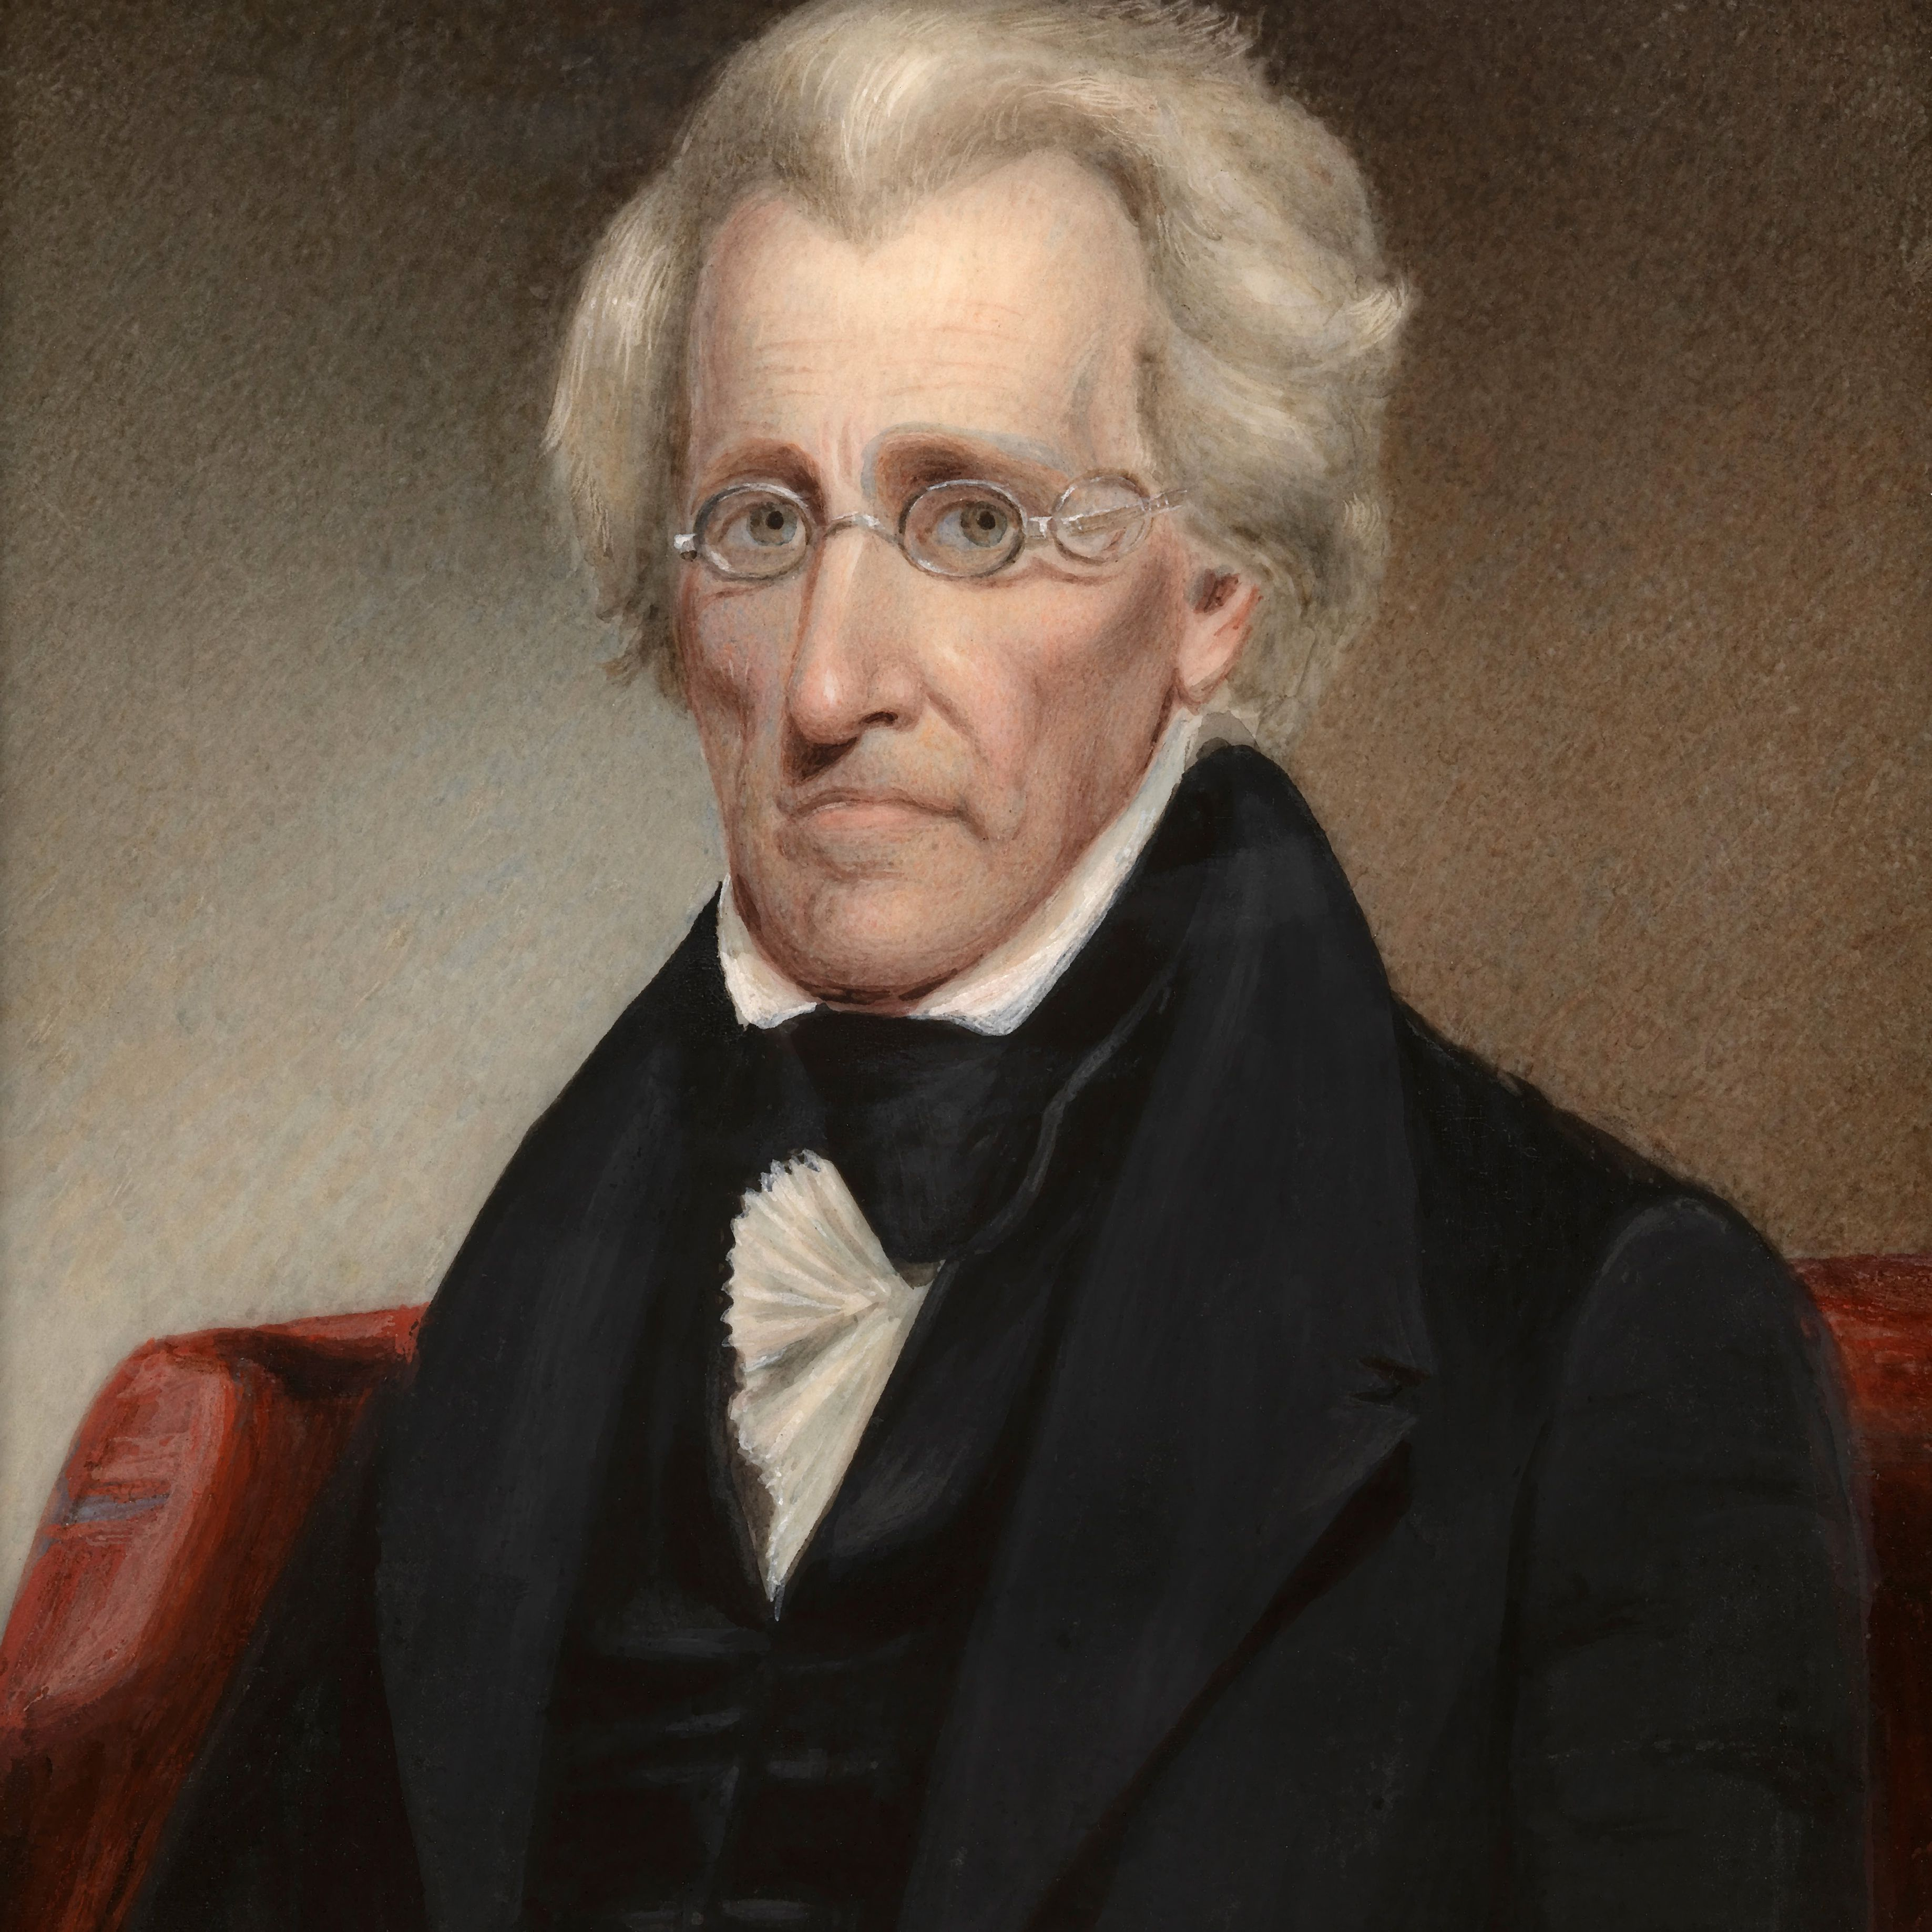 Painting of President Andrew Jackson.